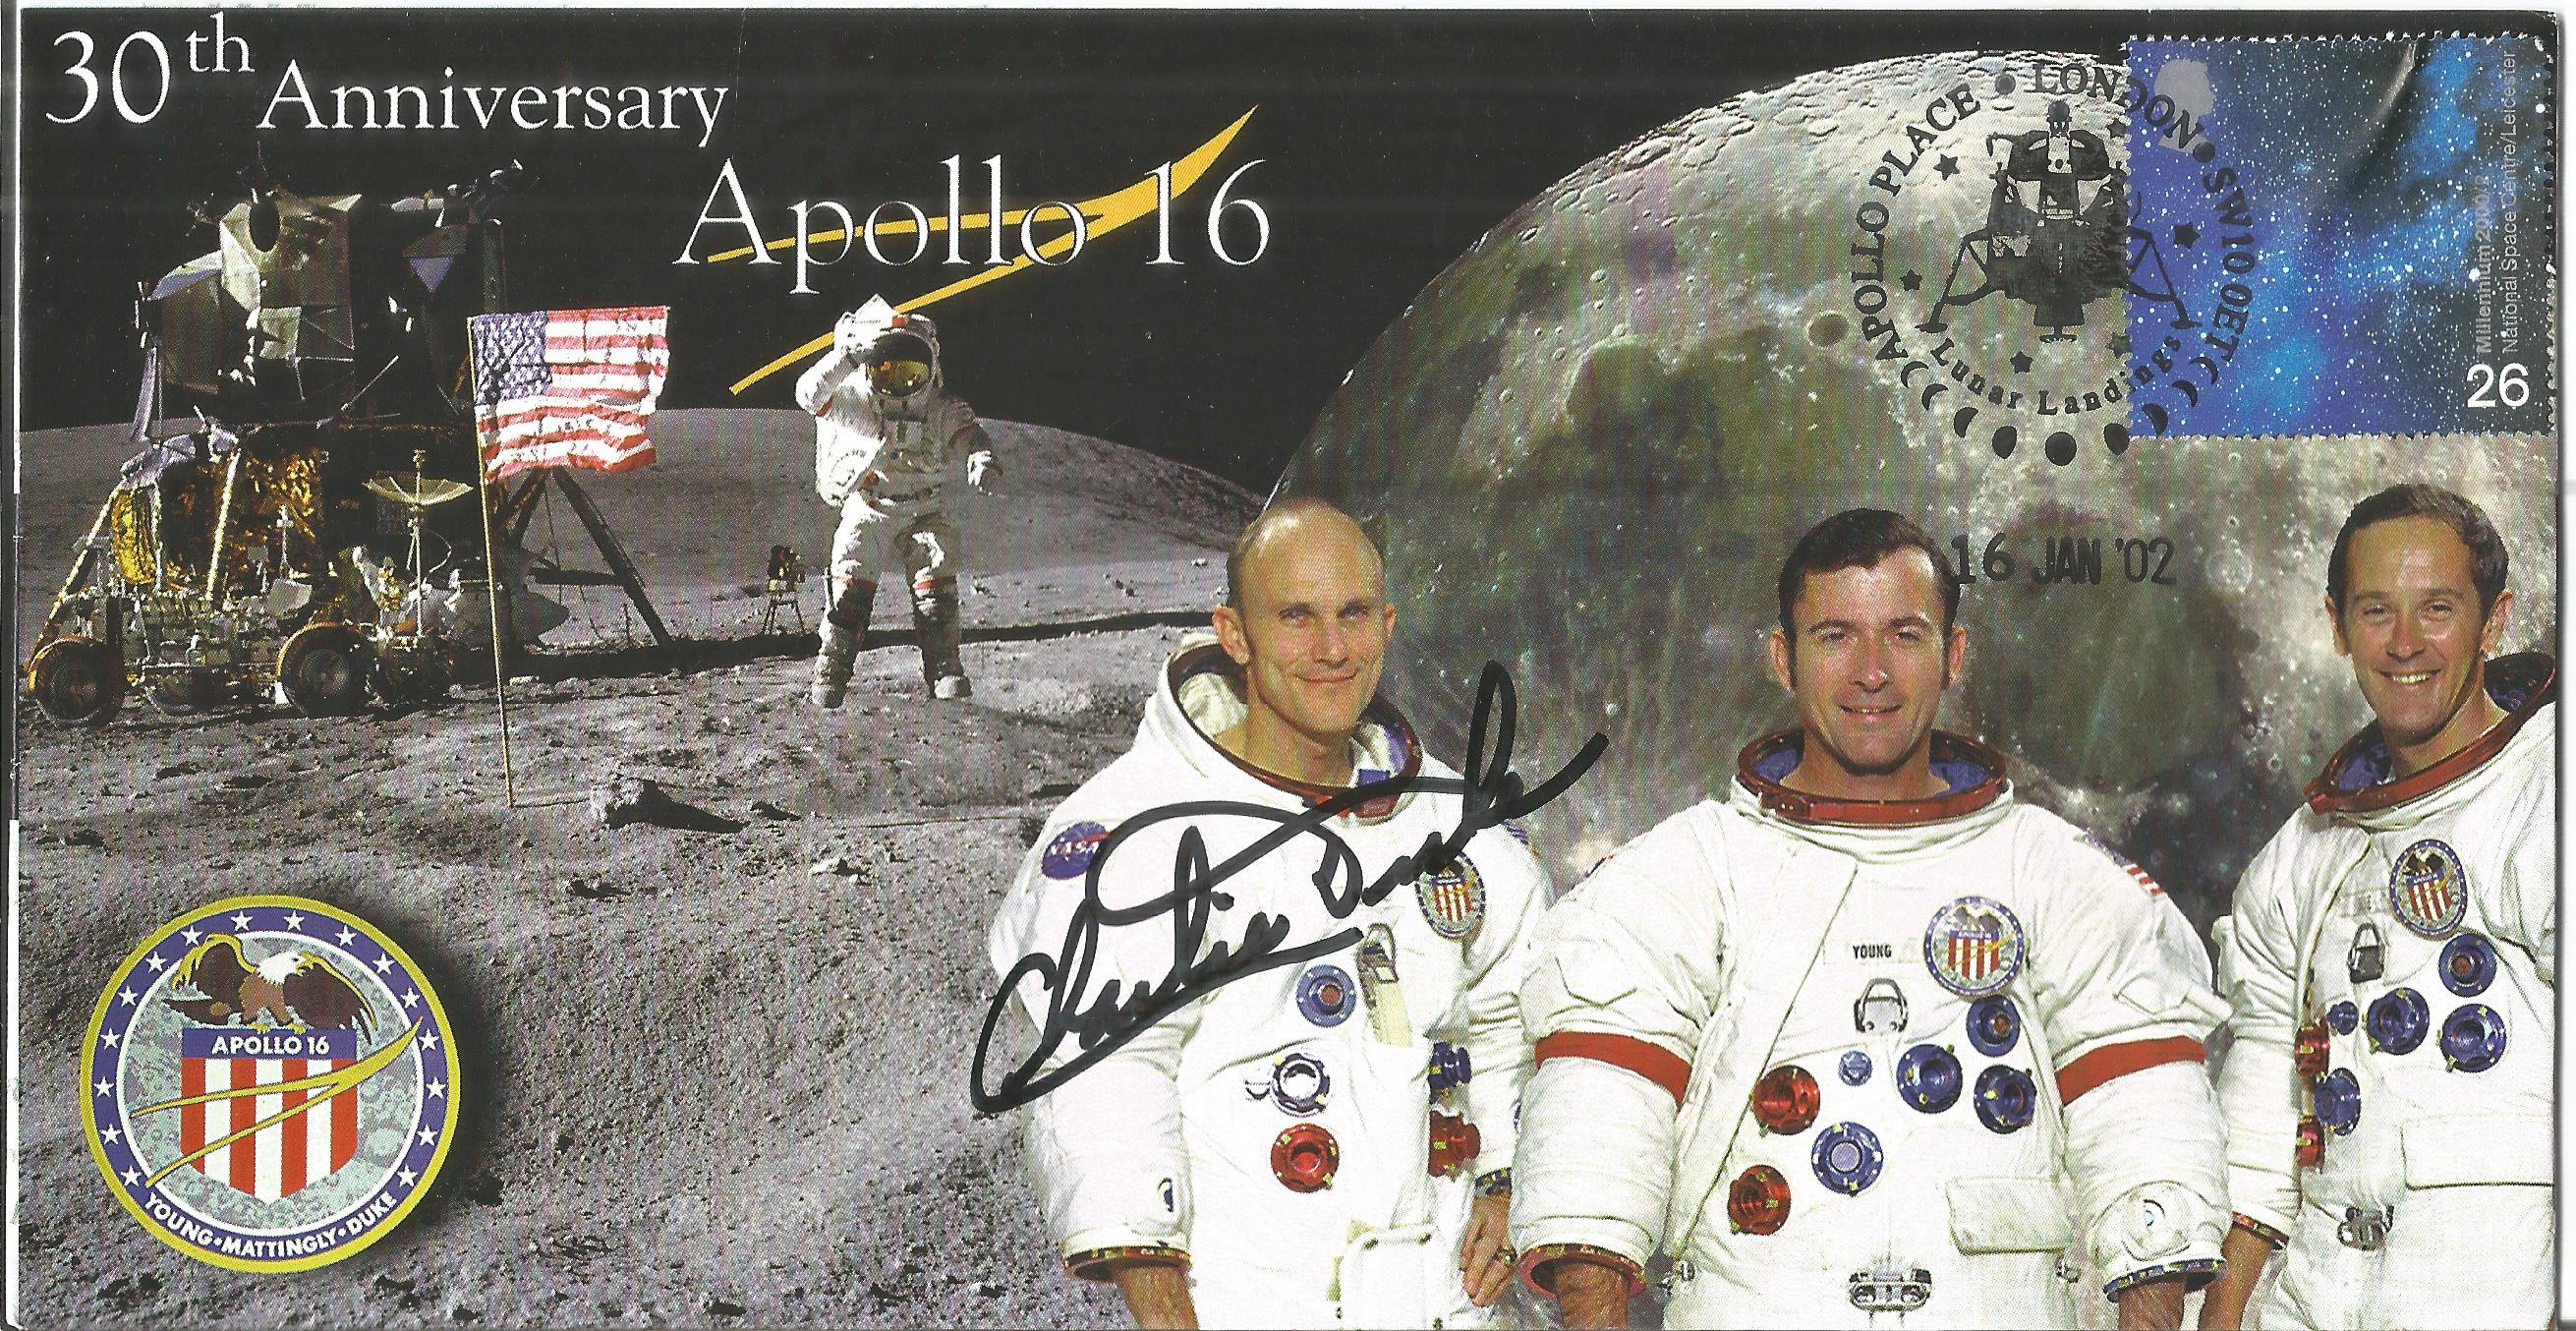 Space Moonwalker Charlie Duke NASA Astronaut signed 2002 Apollo 16 Limited Edition cover. Good